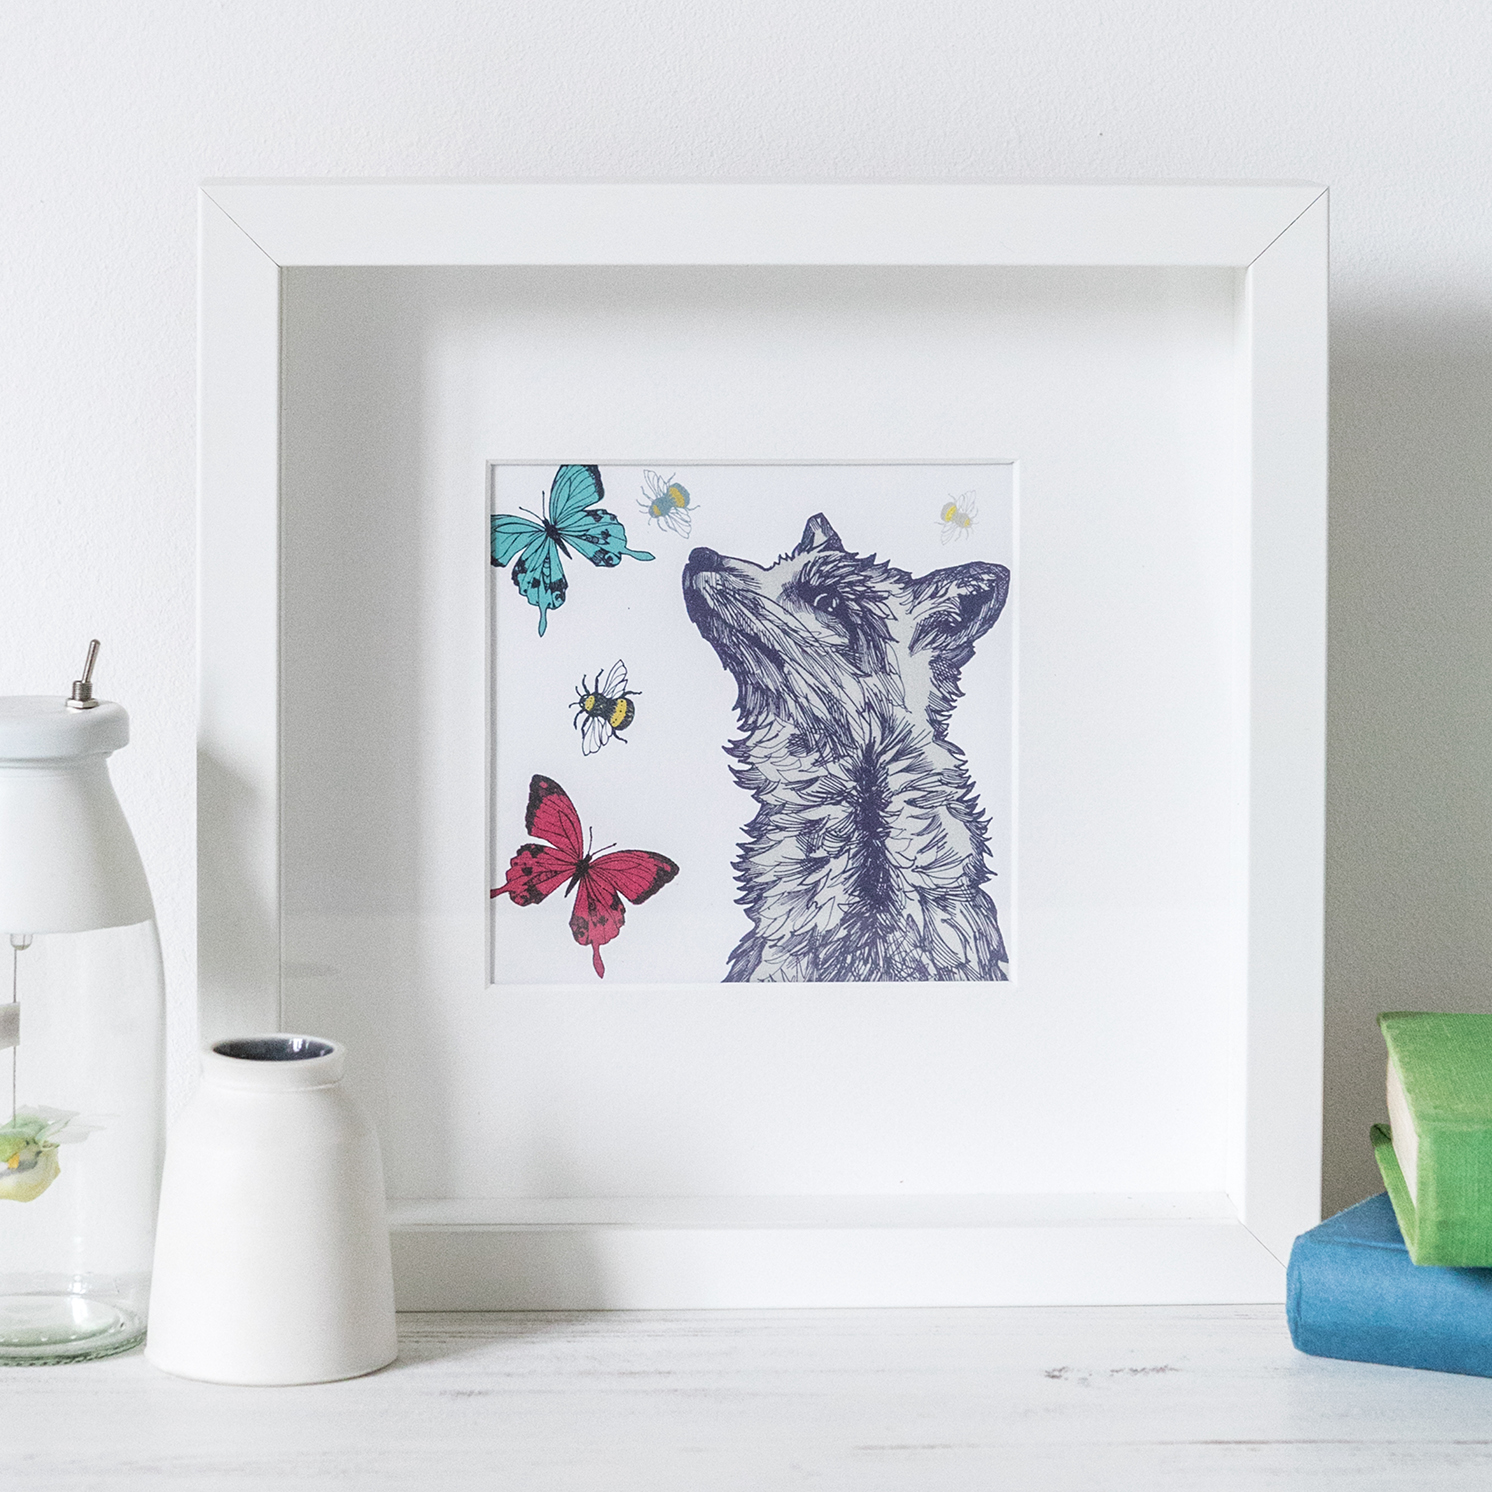 Gillian Kyle – Square Mounted Fox with Bees and Butterflies Print Only